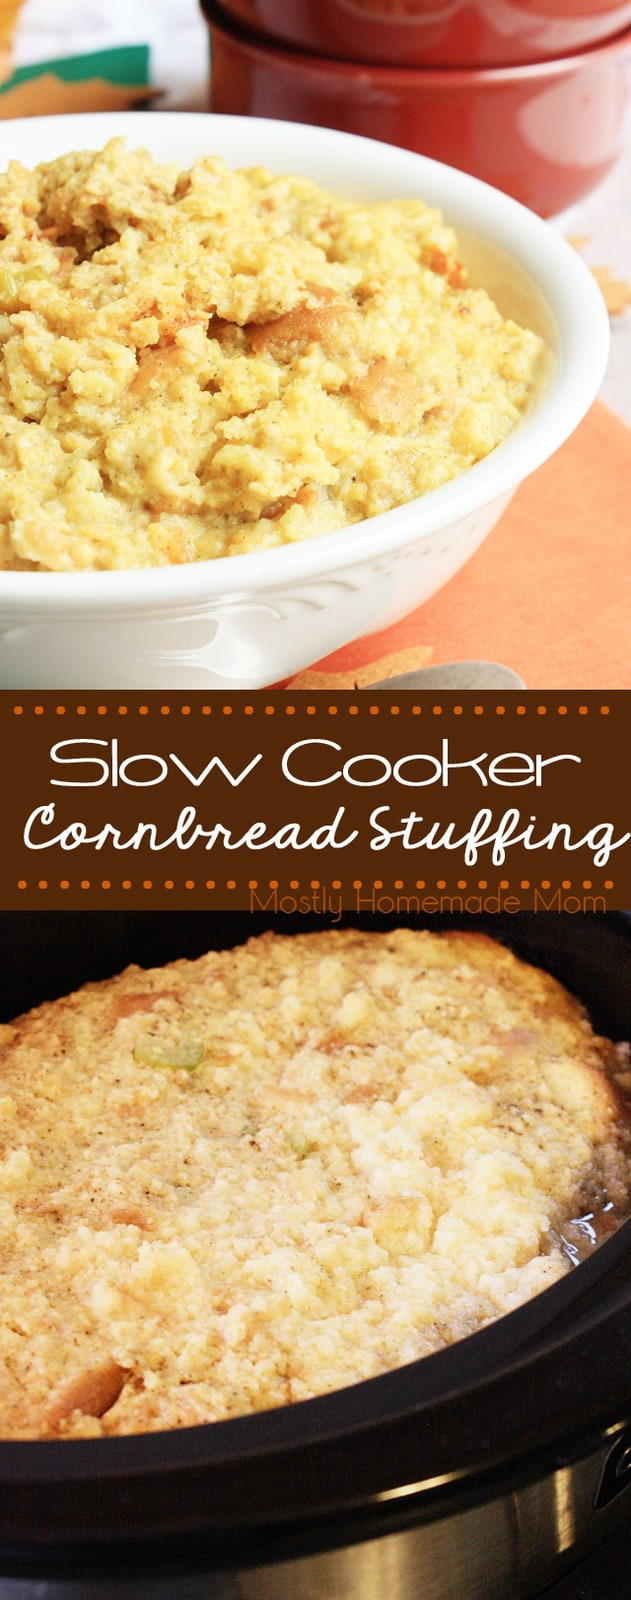 Crockpot Stuffing is perfect to free up the oven for Thanksgiving dinner! Cornbread stuffing, potato bread, celery, and sage - such an easy side dish! #sidedish #Thanksgiving #Christmas #recipe #cornbreadstuffing #dressing